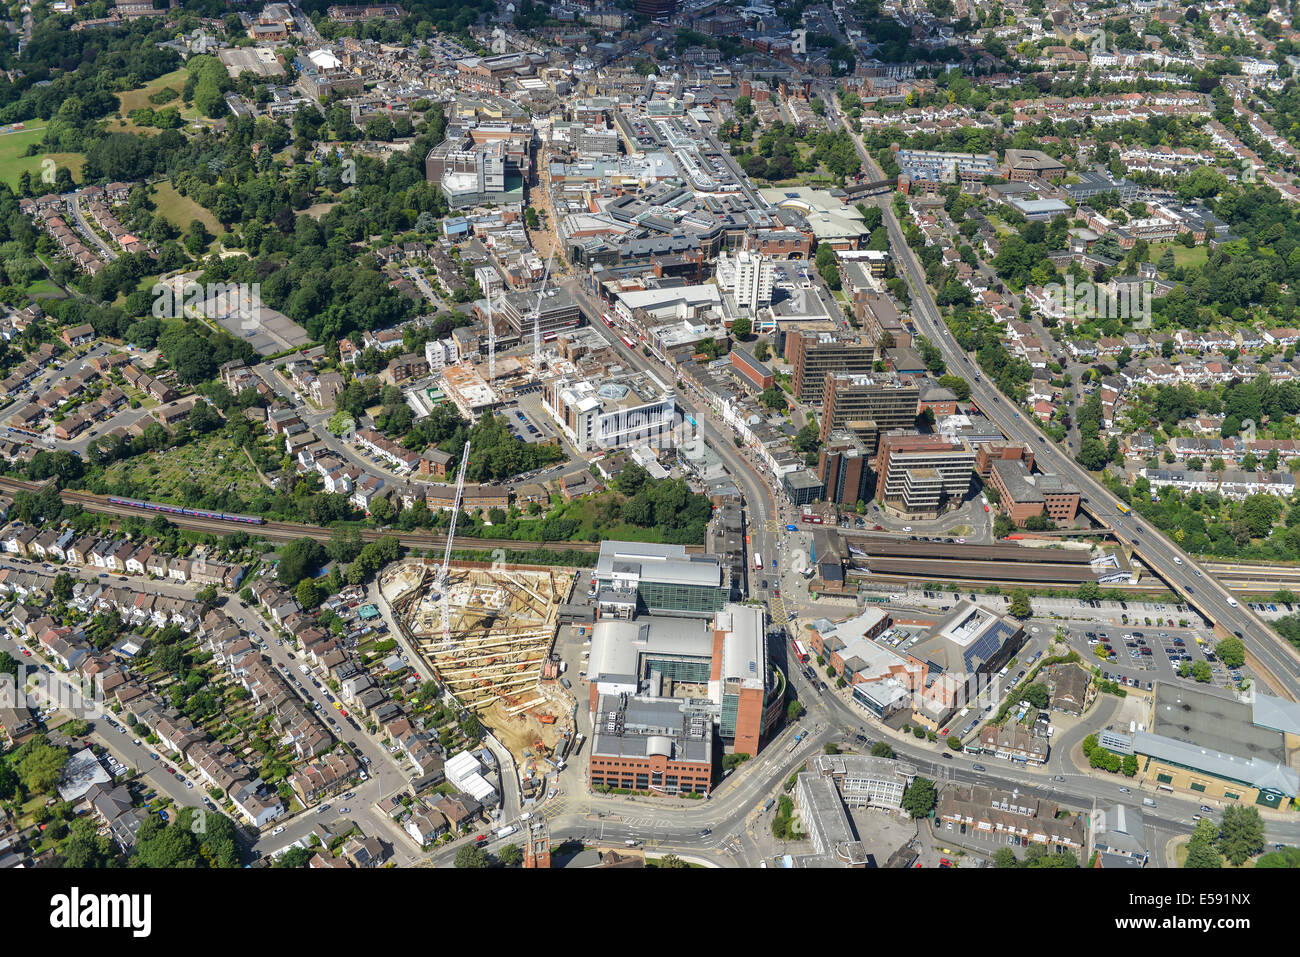 An aerial view showing the centre of Bromley, Greater London, UK. - Stock Image